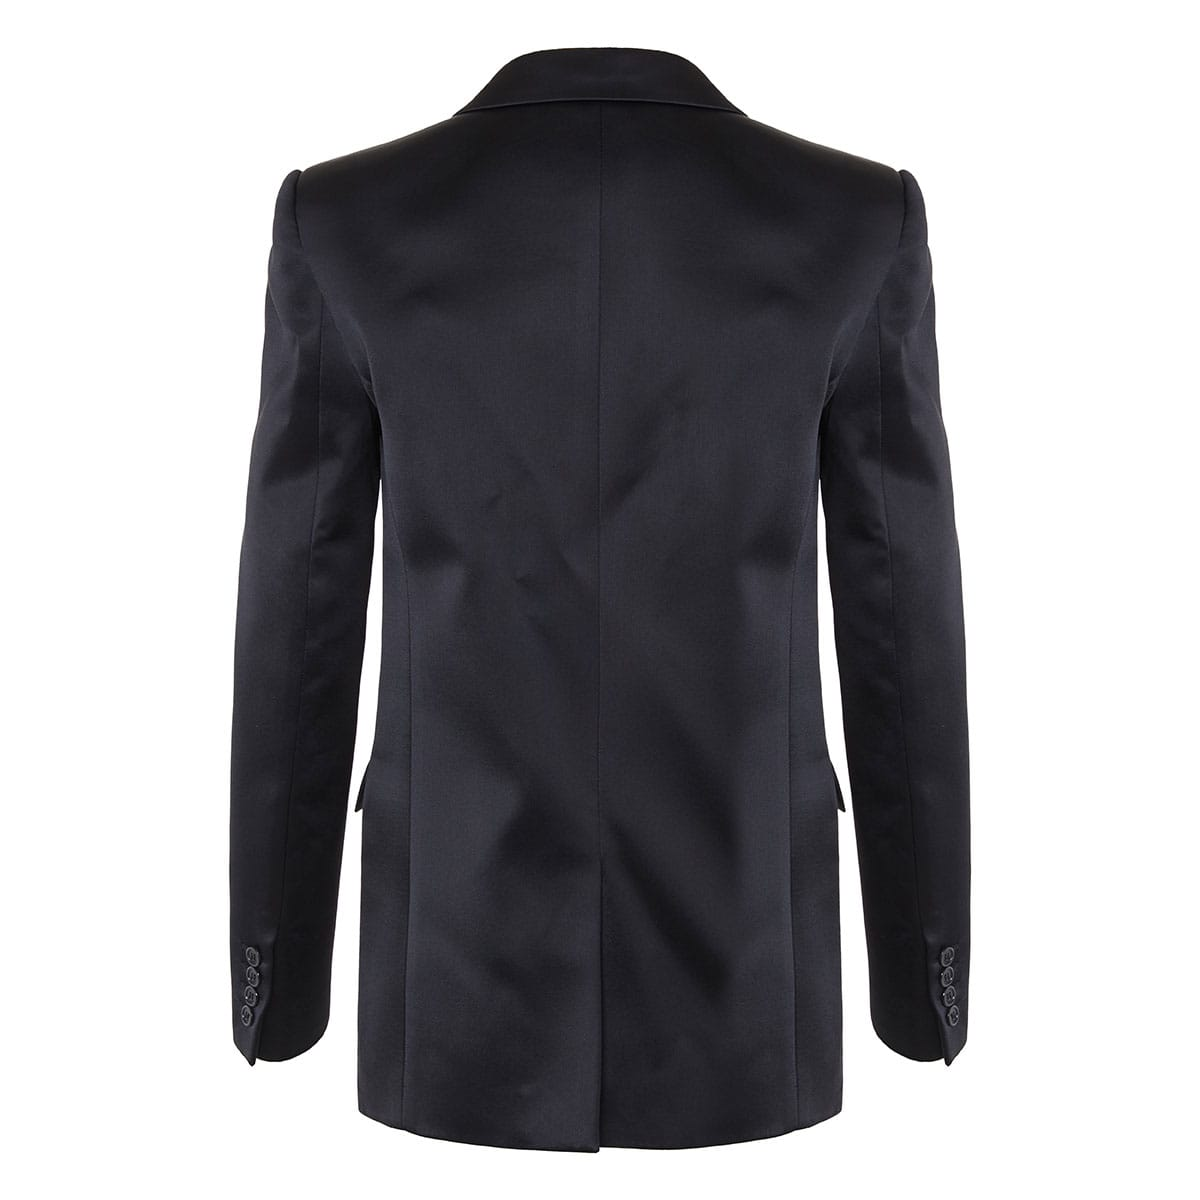 Single-breasted satin blazer